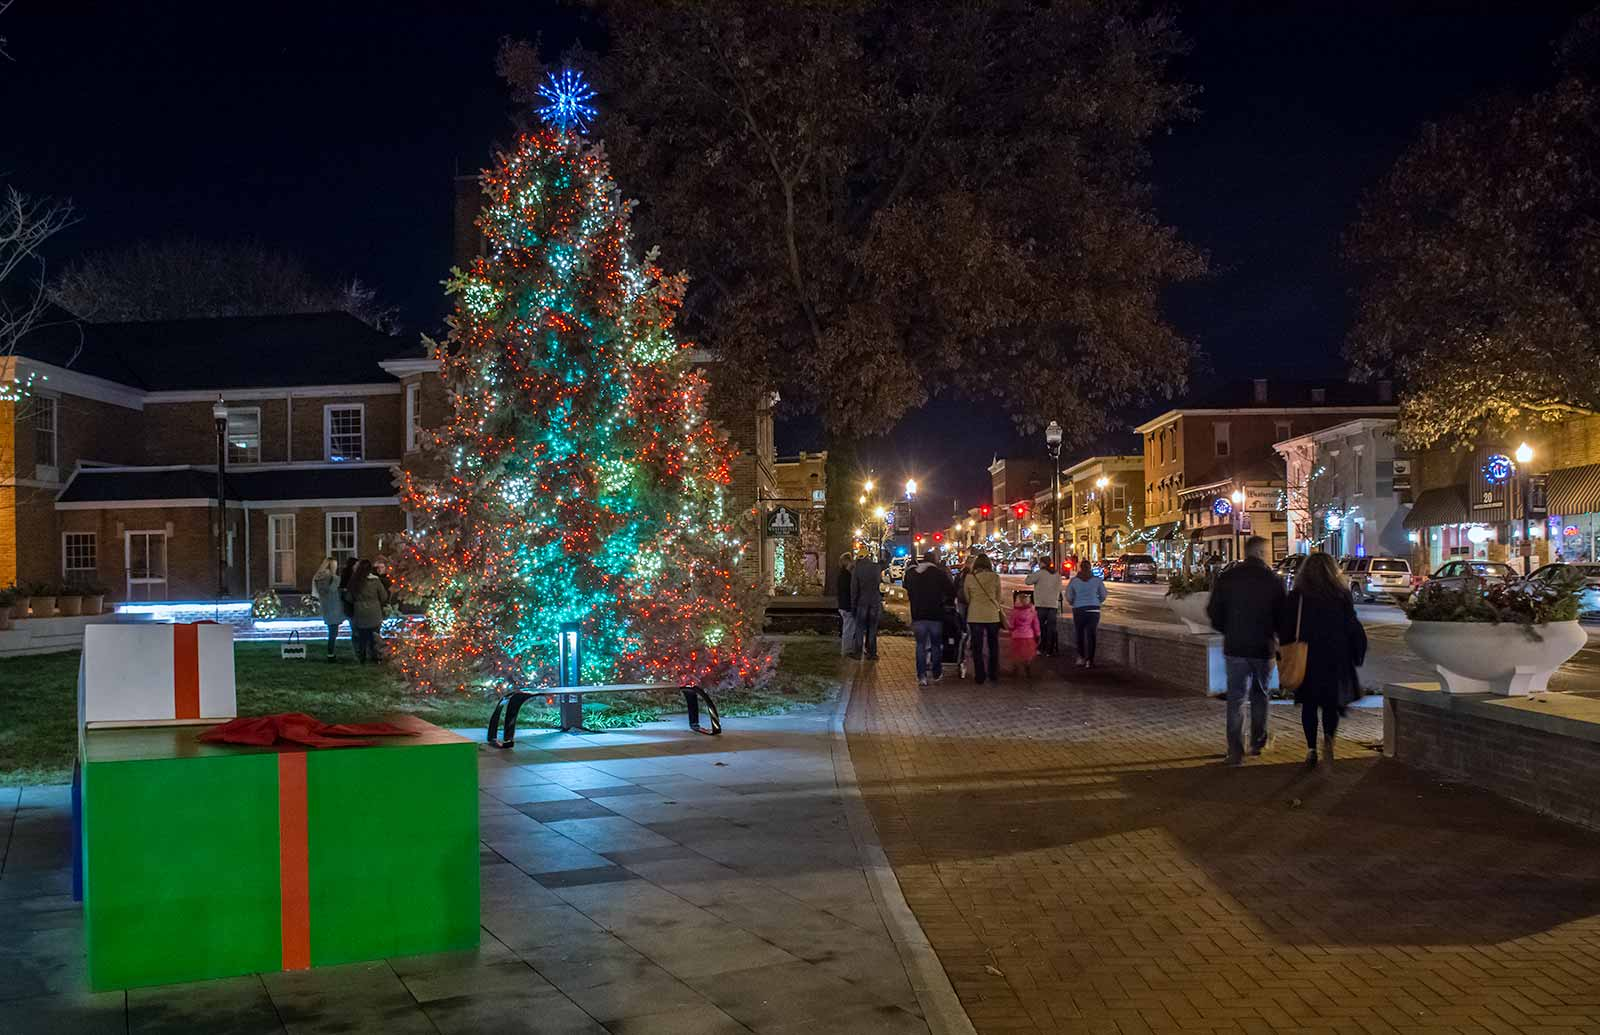 The last of the crowd leaves the new courtyard in front of city hall after the holiday tree lighting ceremony. My Final Photo for Dec. 1, 2017.